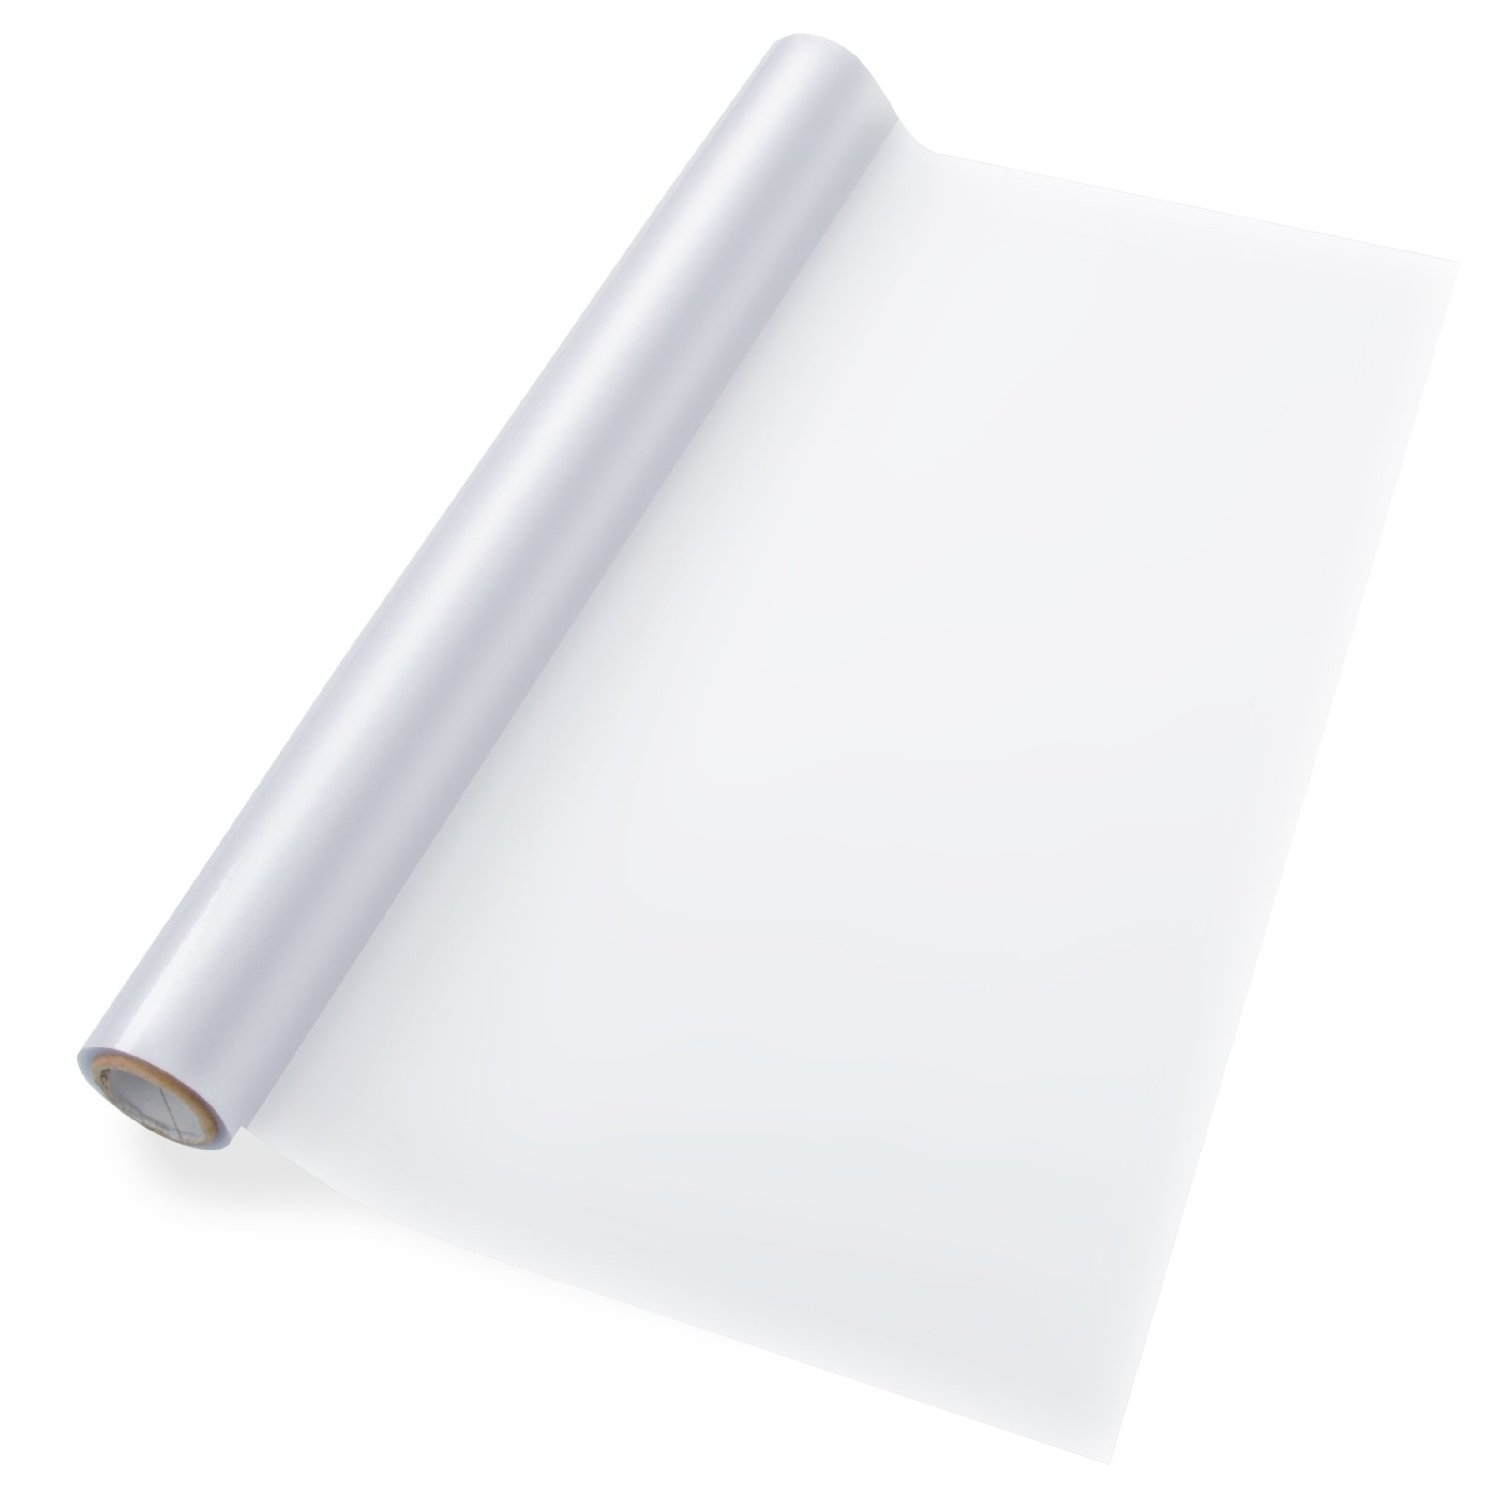 casa pura® Frosted, Static Window Cling Film (no adhesive) | Milk Glass Privacy Foil, 43 x 300 cm